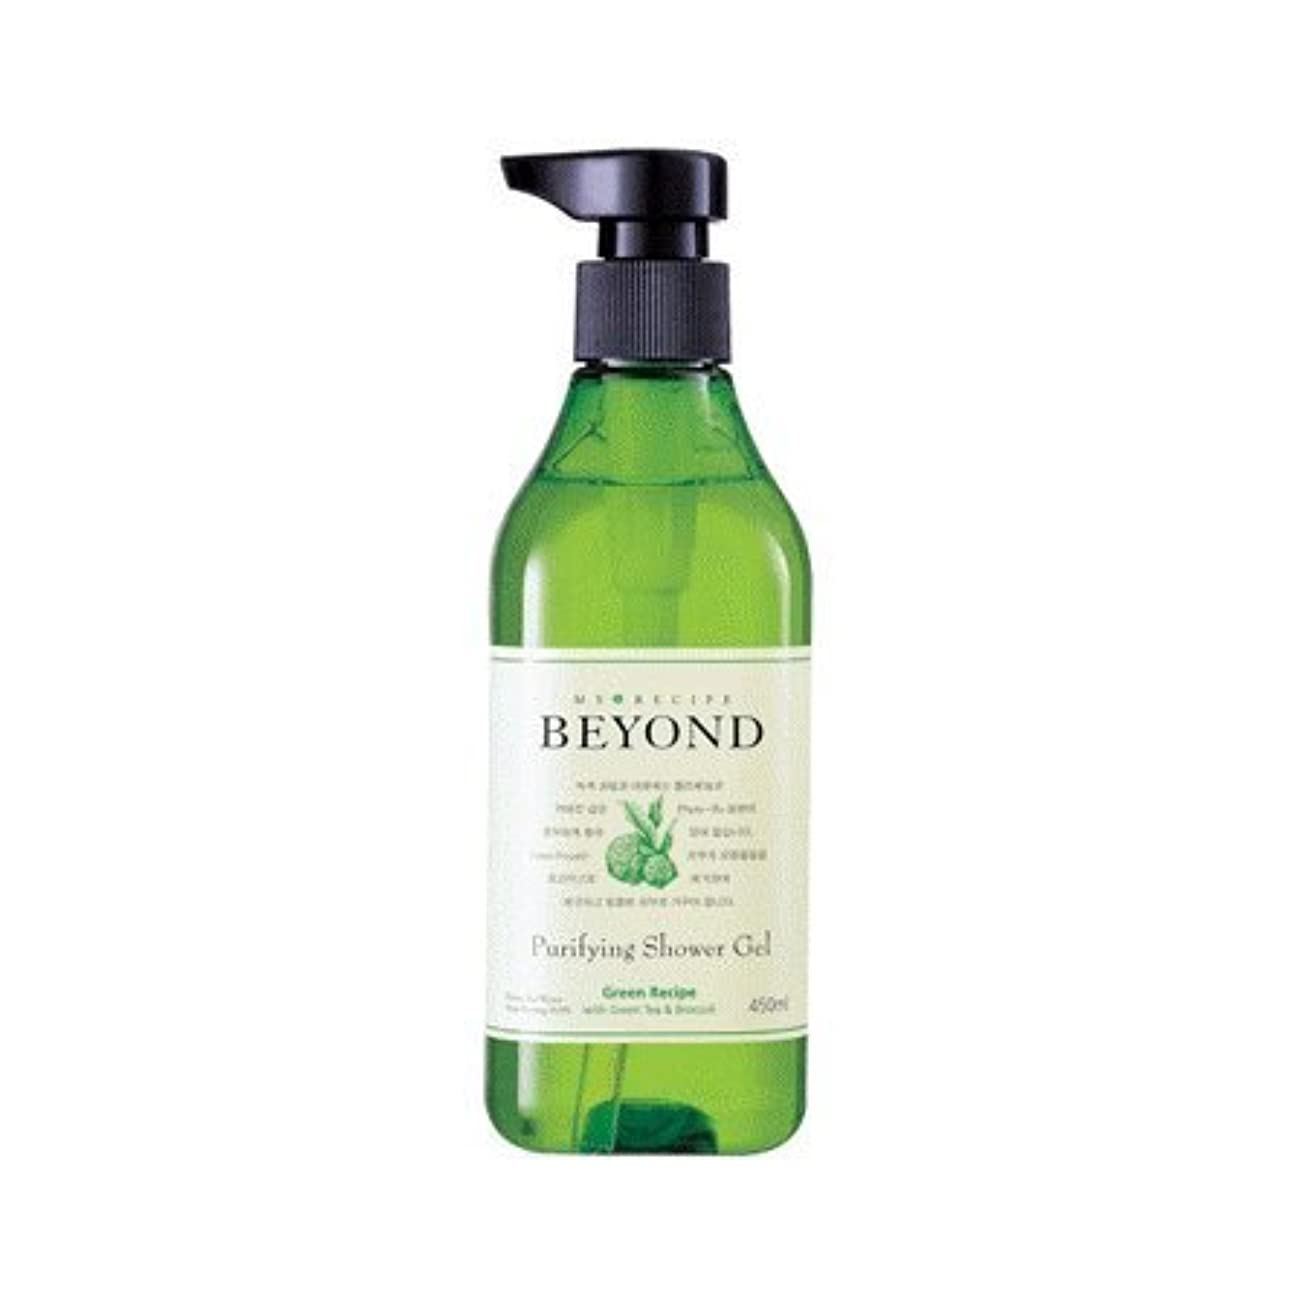 Beyond purifying Shower Gel (250ml)